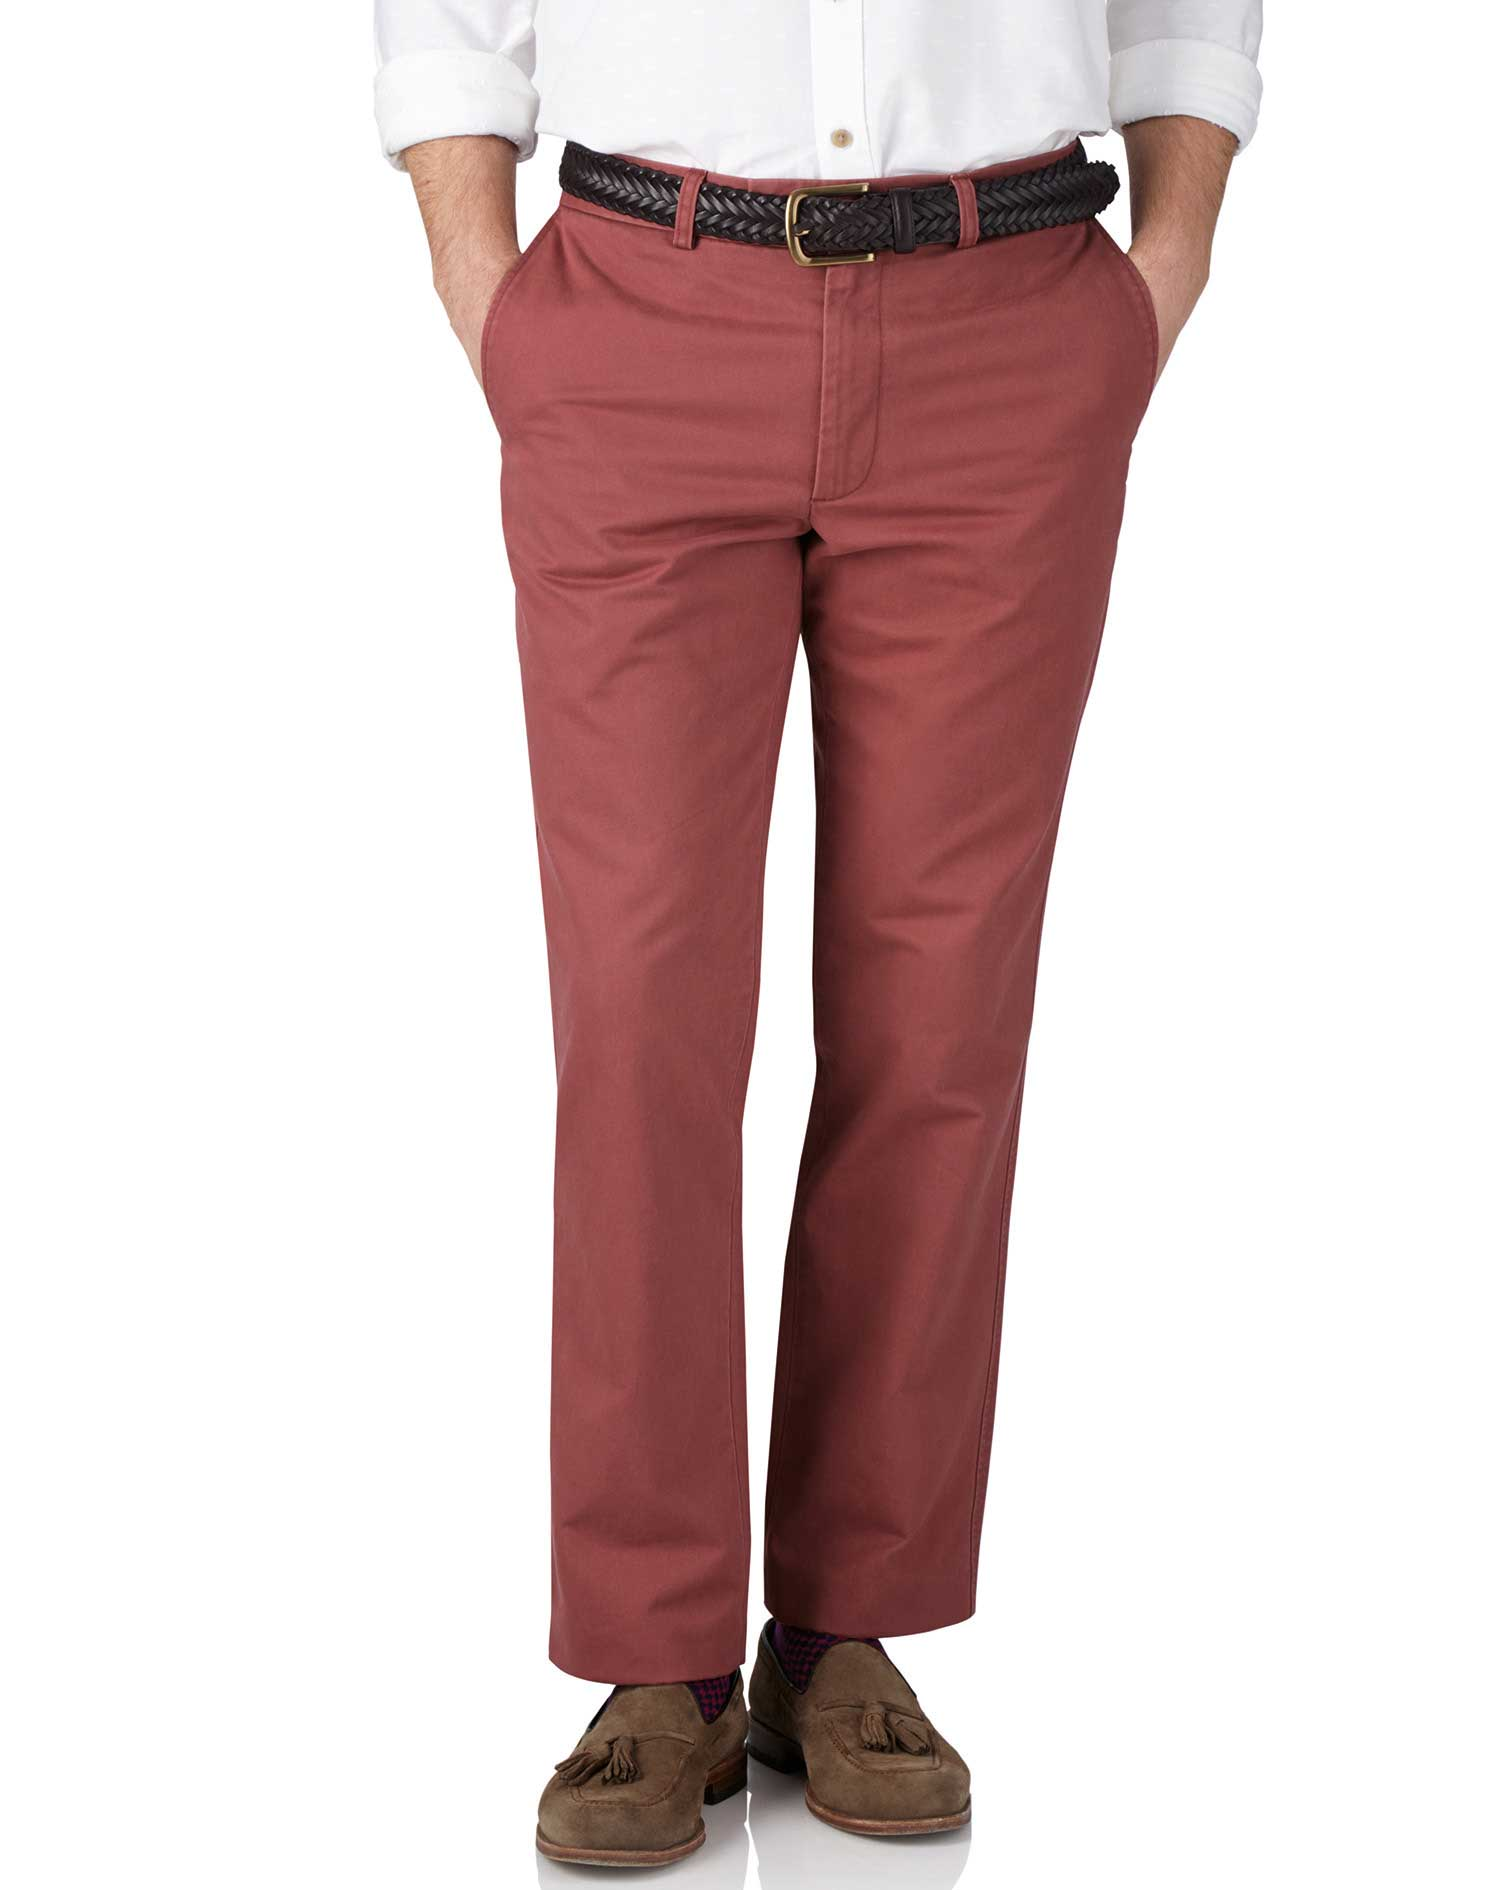 Light Red Slim Fit Flat Front Weekend Cotton Chino Trousers Size W30 L29 by Charles Tyrwhitt